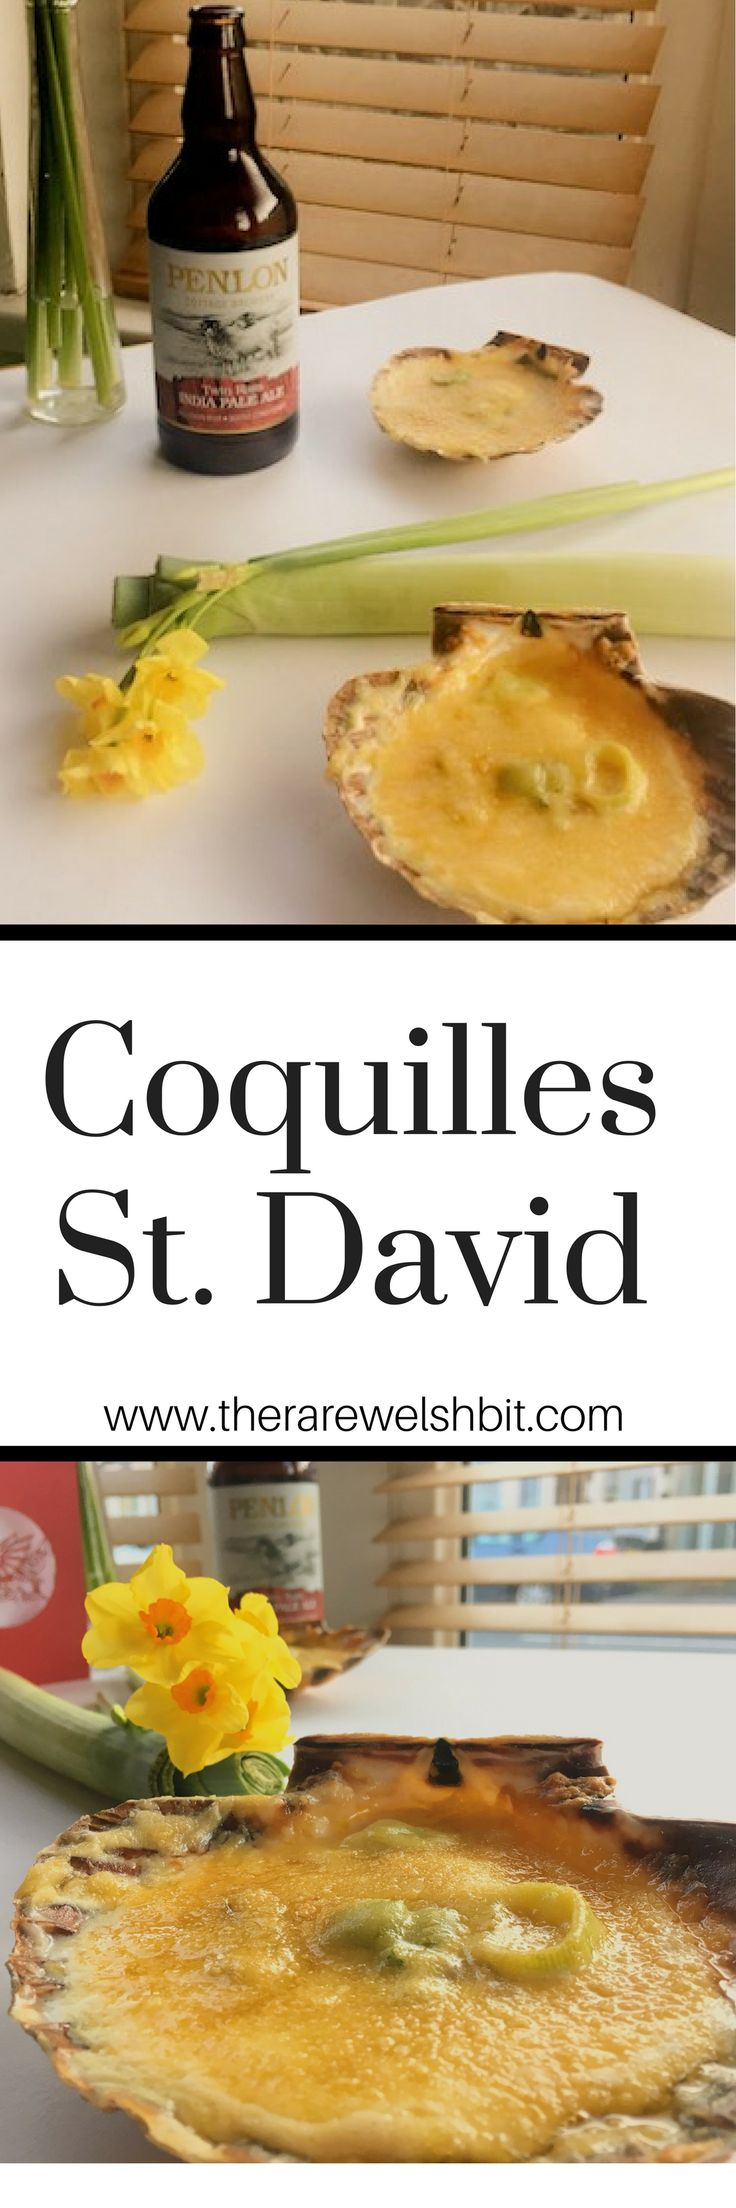 St. David's Day Recipe for Coquilles St. David by The Rare Welsh Bit Food and Travel Blog